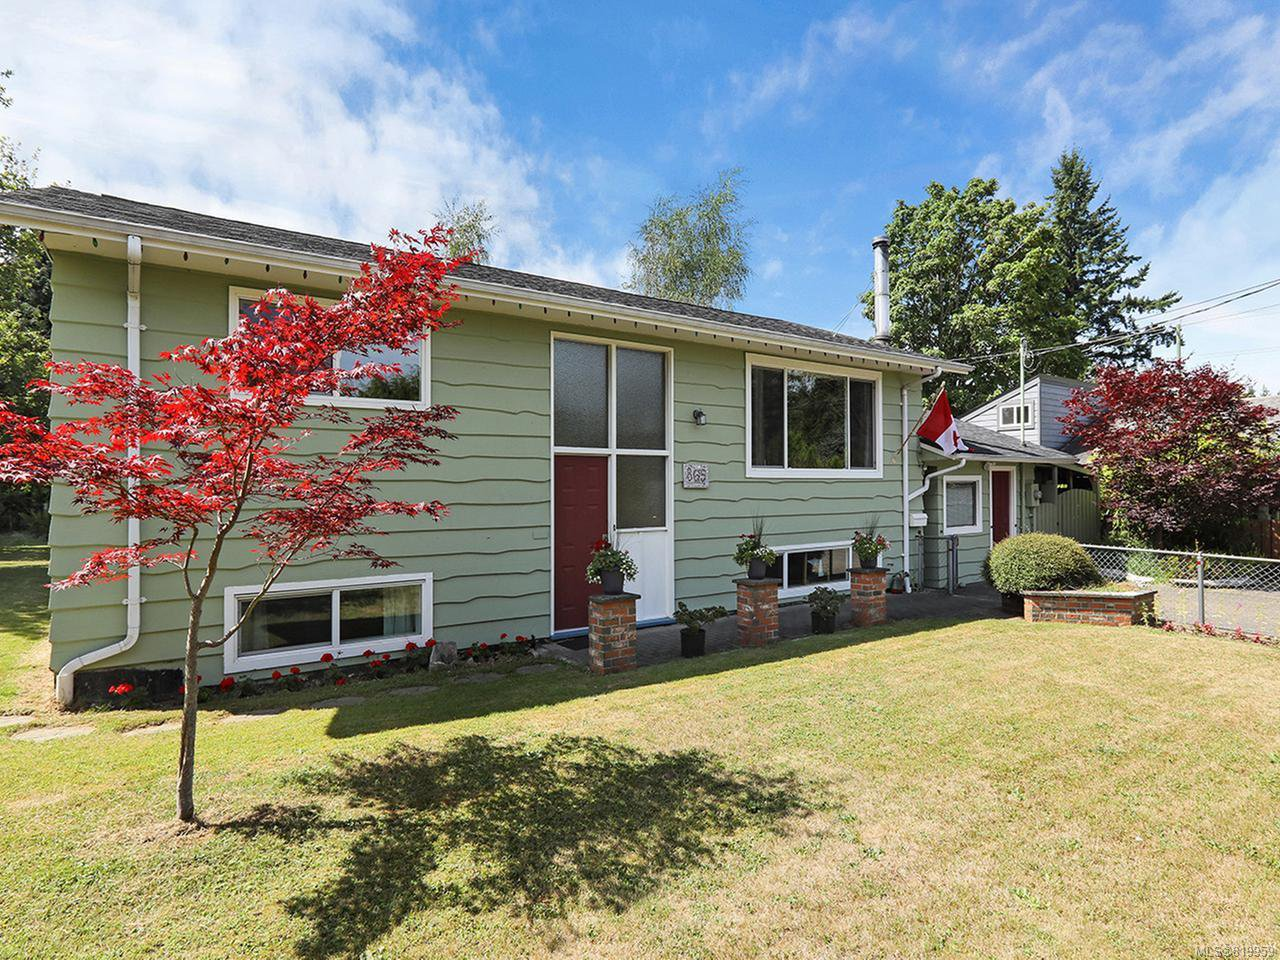 Main Photo: 865 2nd Ave in CAMPBELL RIVER: CR Campbell River Central House for sale (Campbell River)  : MLS®# 819959